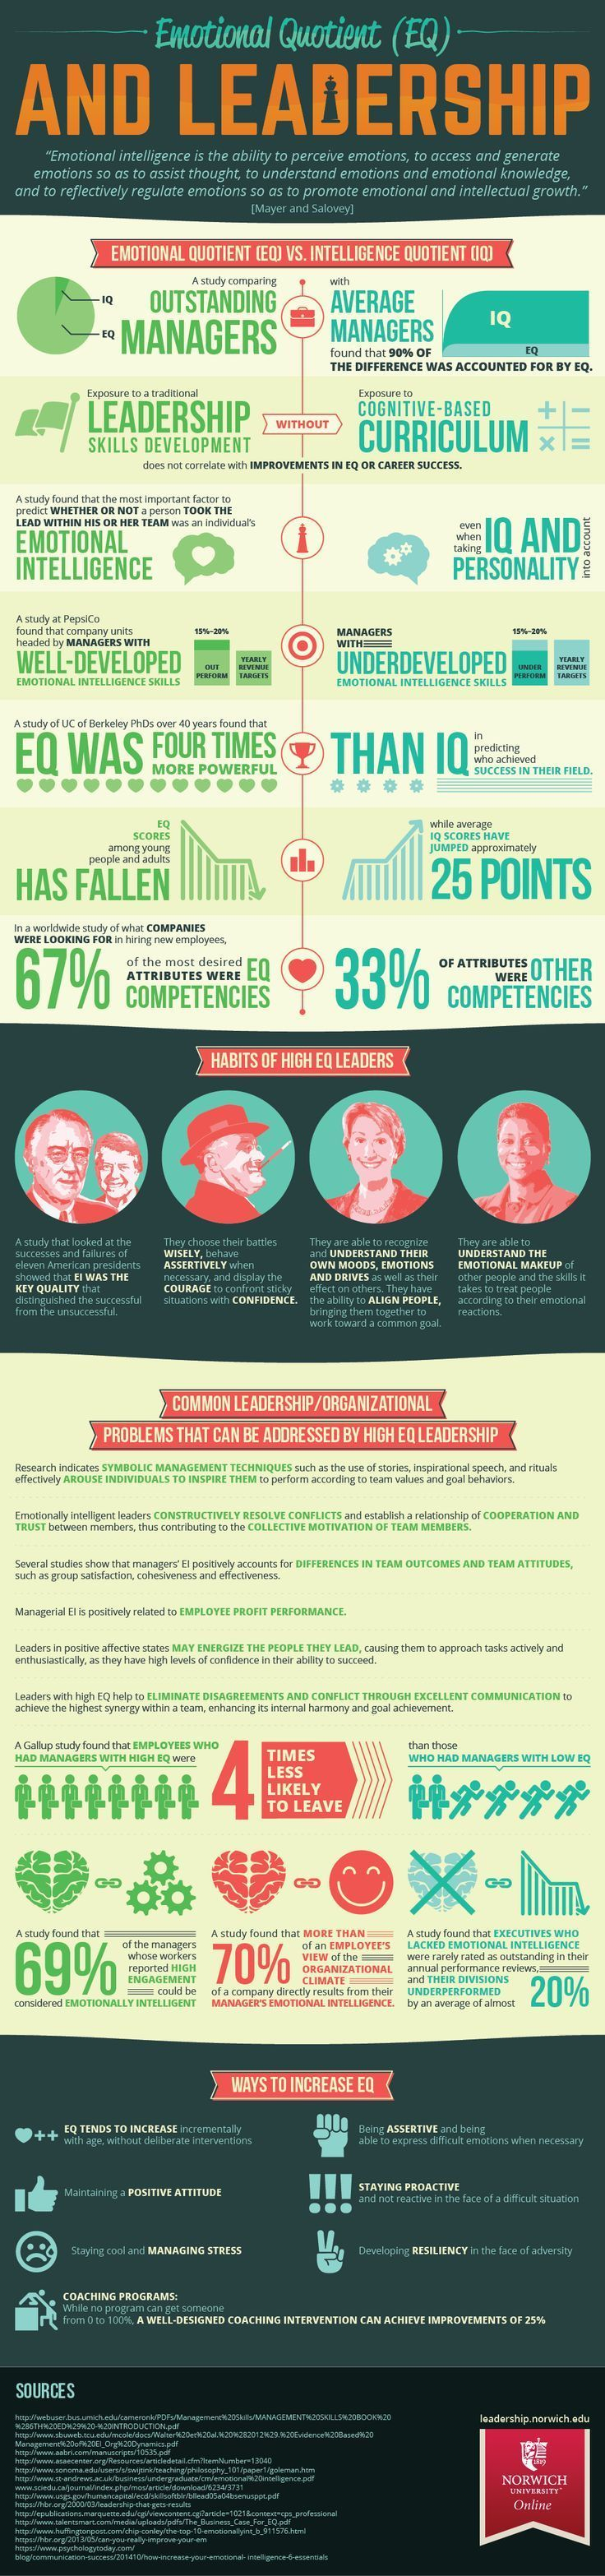 Emotional Intelligence and Leadership Infographic goodmanager If